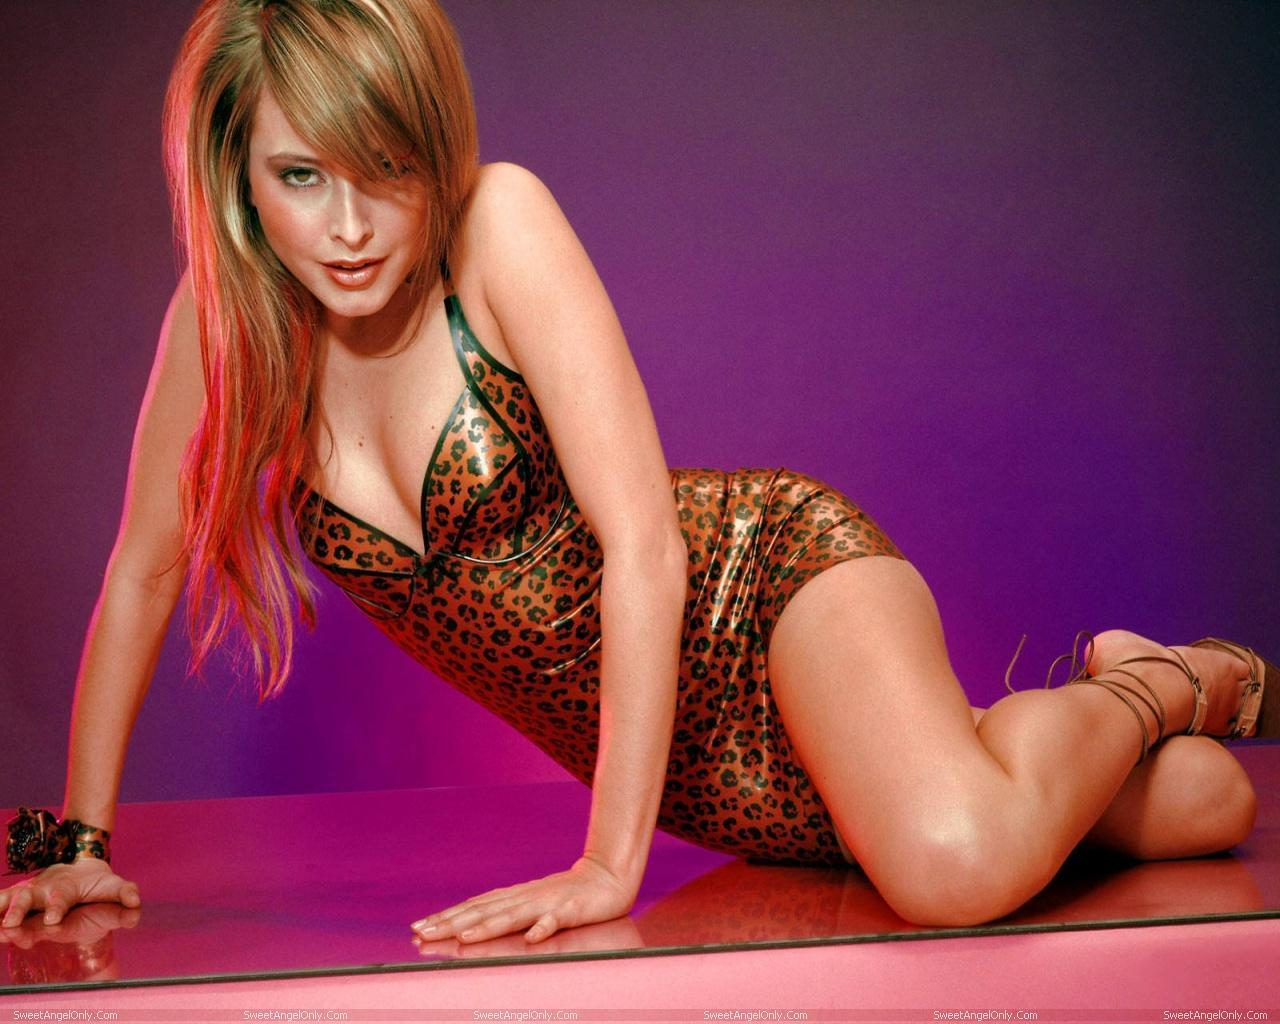 http://4.bp.blogspot.com/-ke254Z3b1-g/TV1GqQHXobI/AAAAAAAAEfw/lSwopEoeQxo/s1600/actress_holly_valance_hot_wallpapers_sweetangelonly_03.jpg